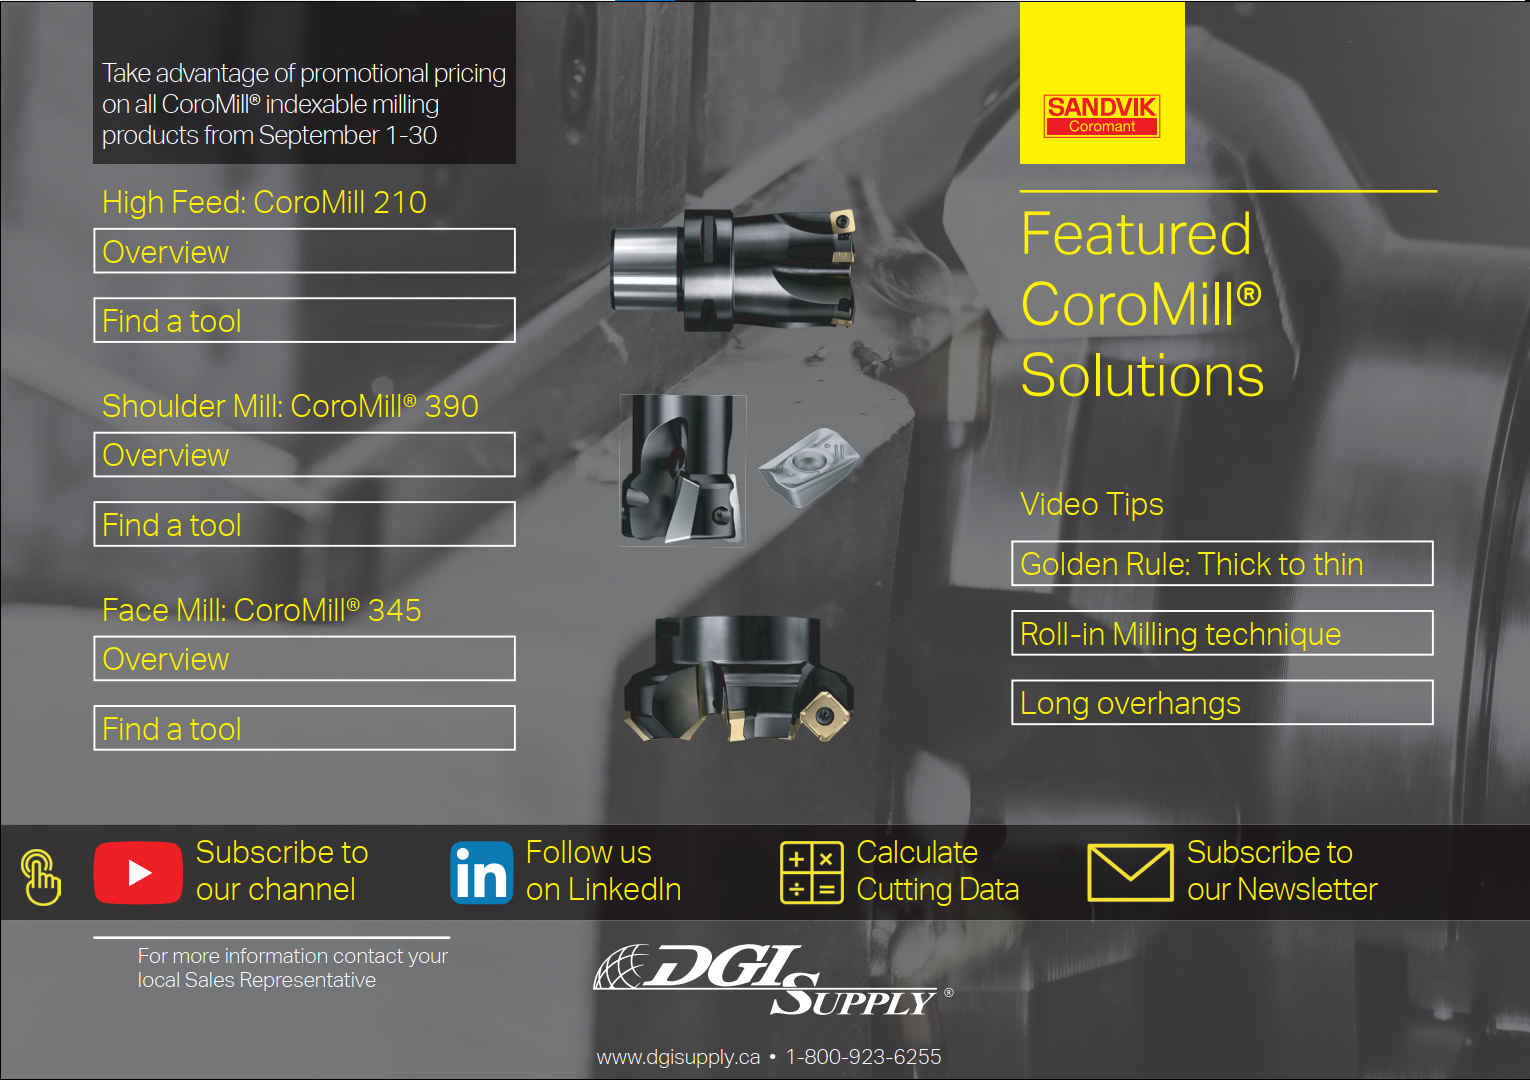 Featured Milling Assortment - Pocket Guide DGI